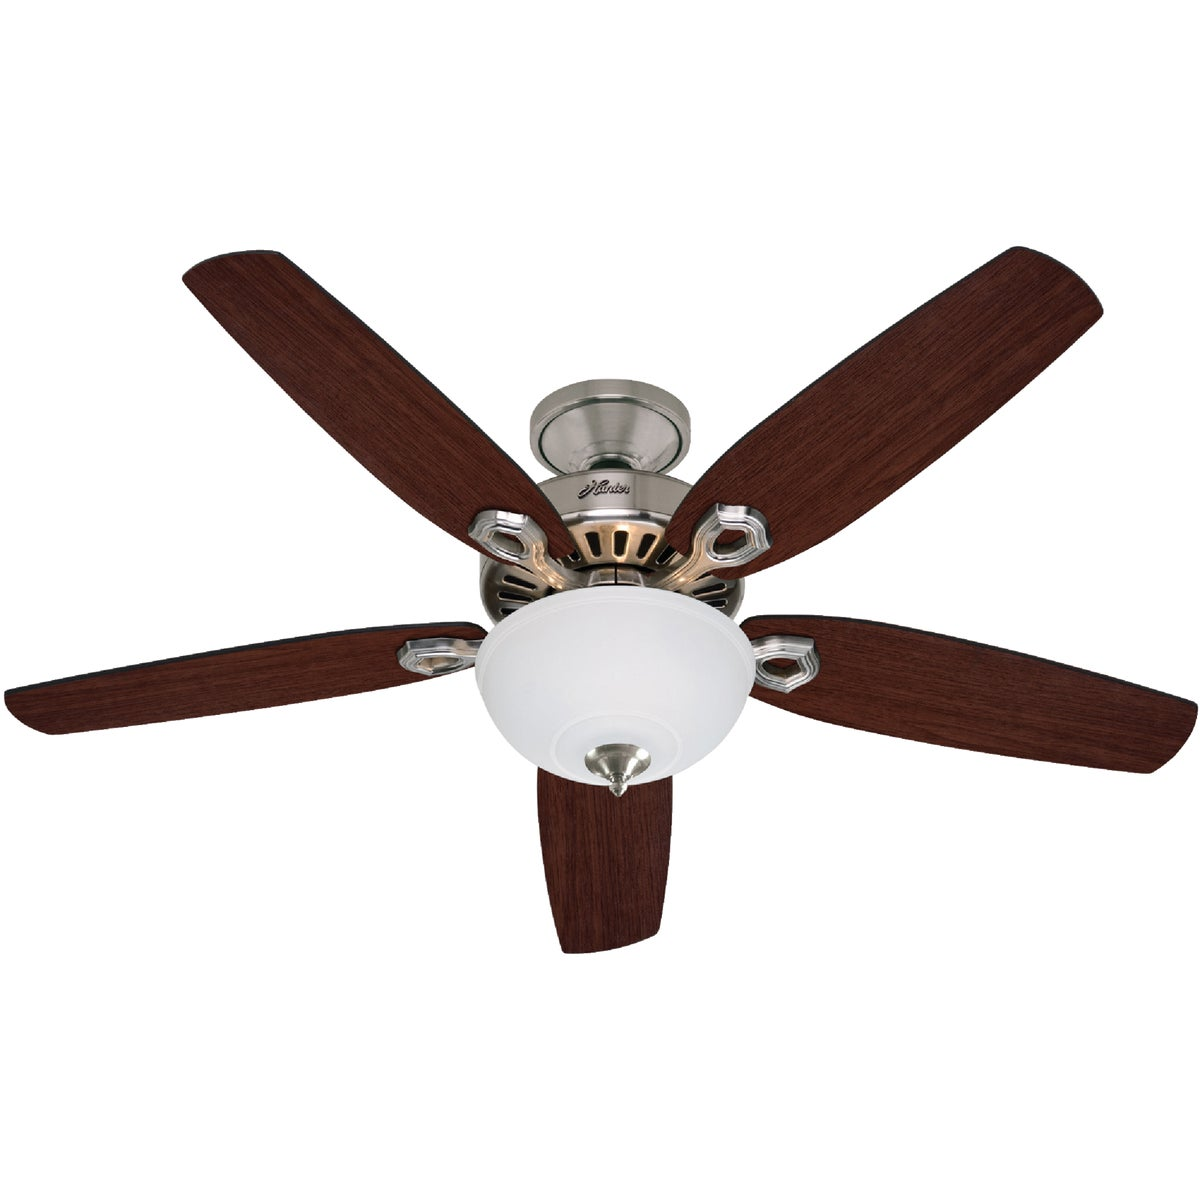 "52"" BR NICKEL FAN W/LT"